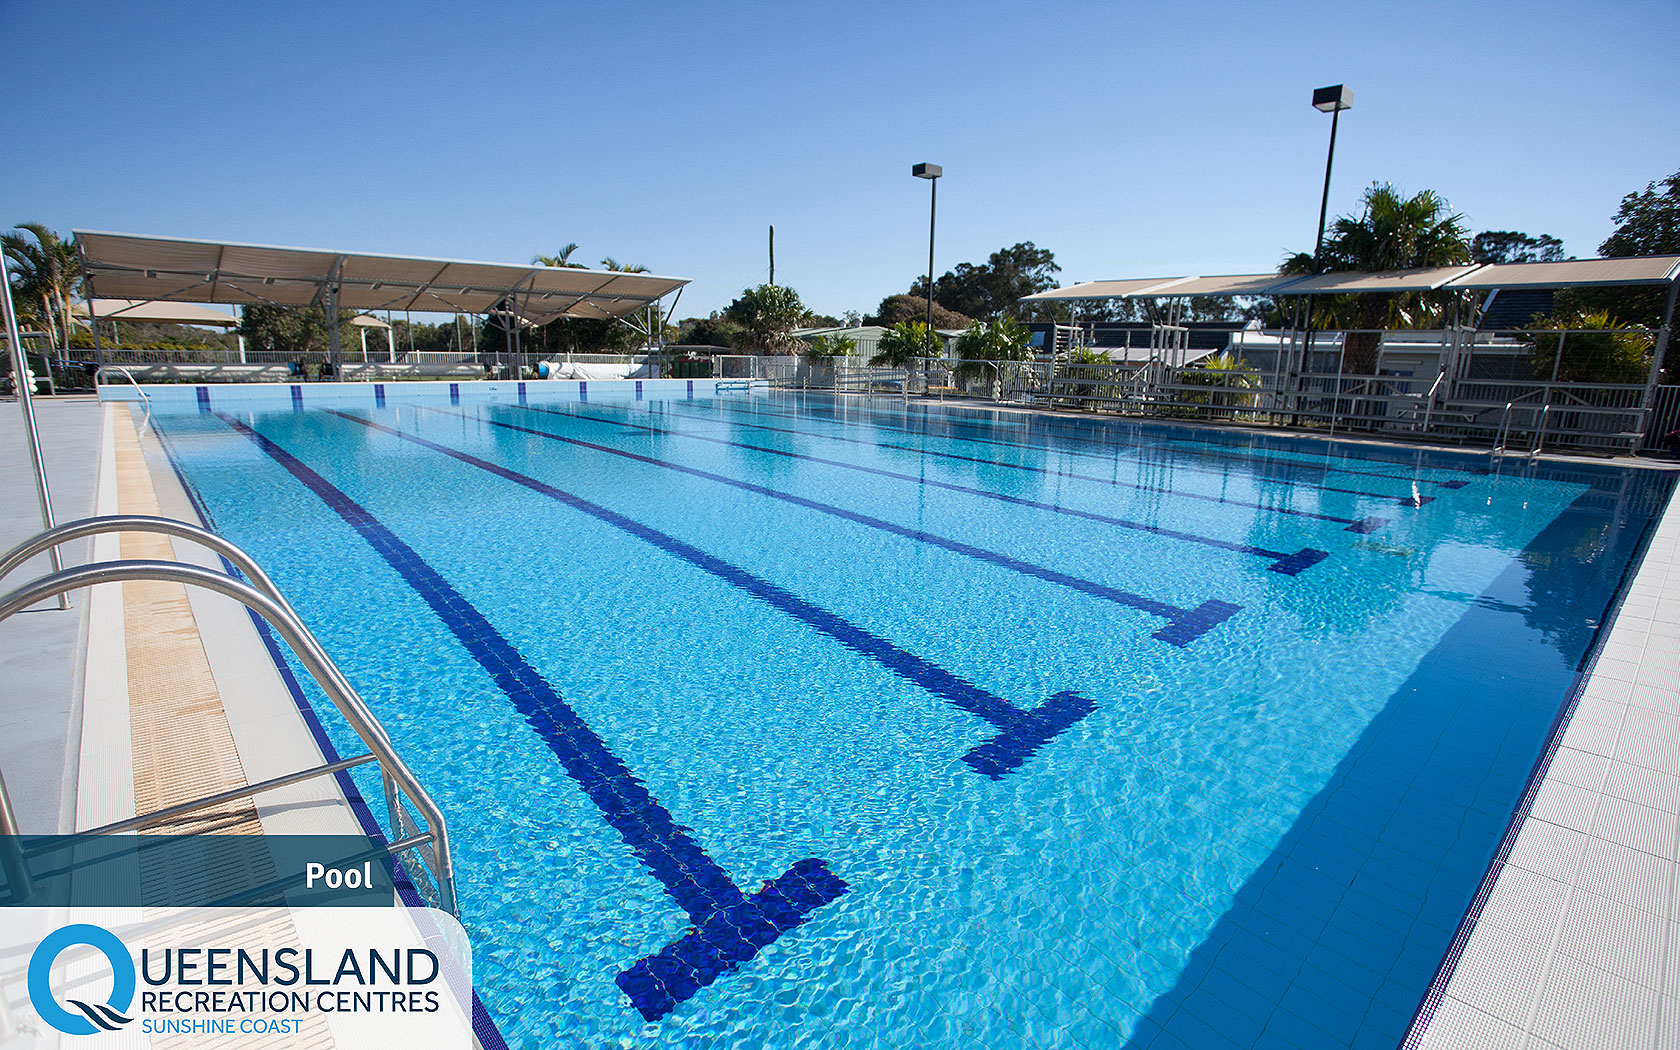 Outdoor heated pool with shade cloths and spectating stands at the Sunshine Coast Recreation Centre